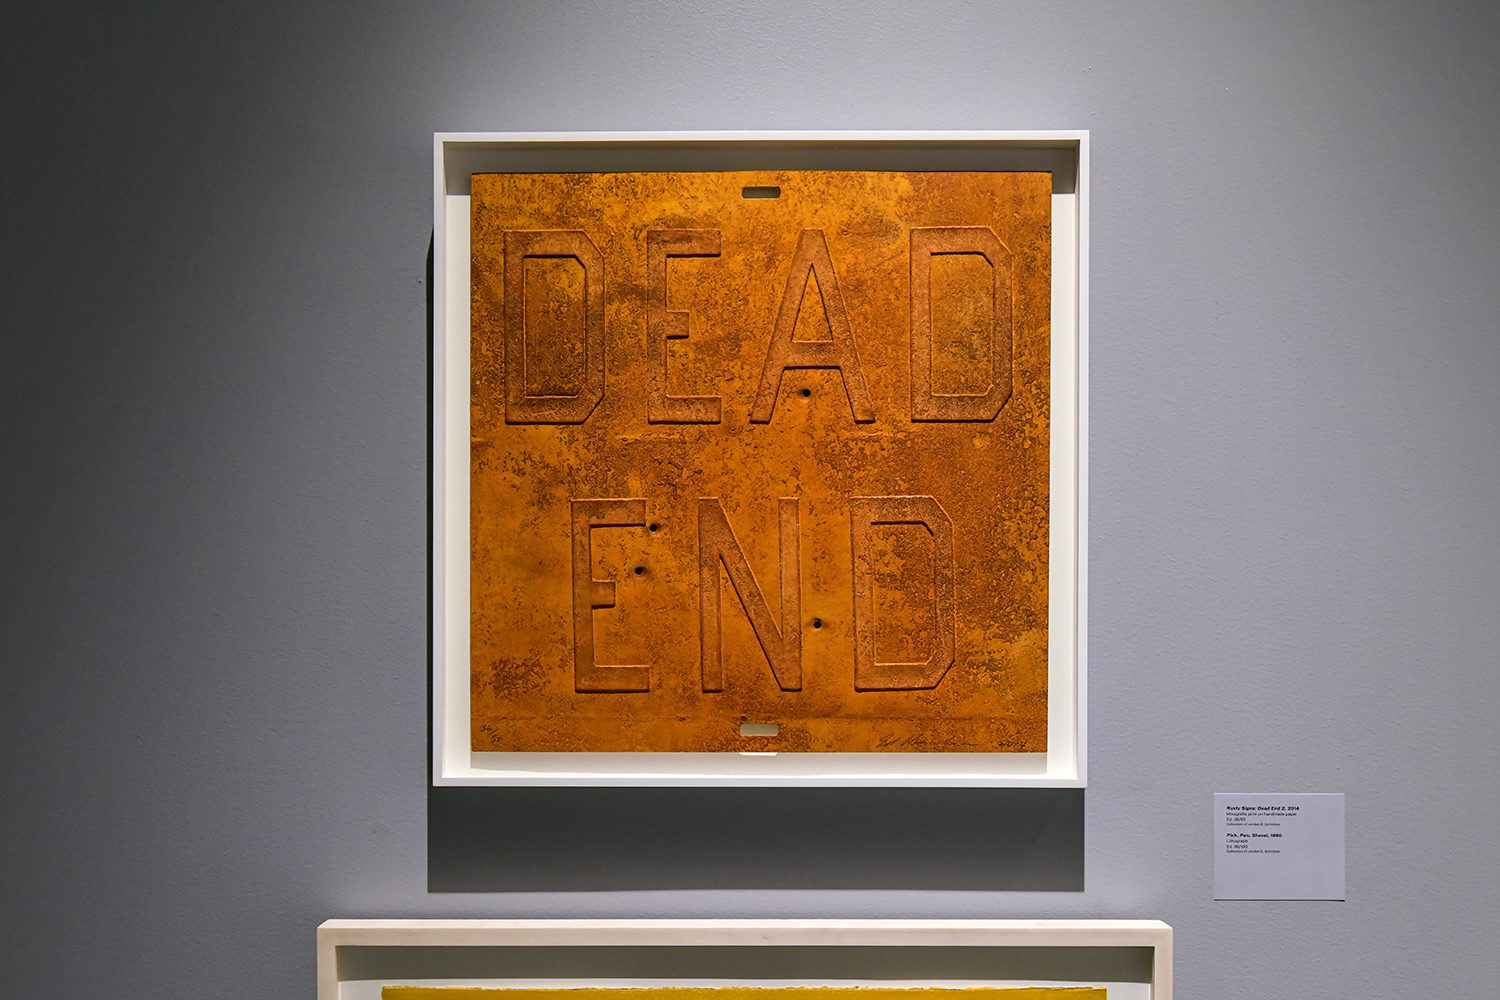 A framed art print on a gallery wall depicts the words DEAD END in a style resembling a rusted street sign